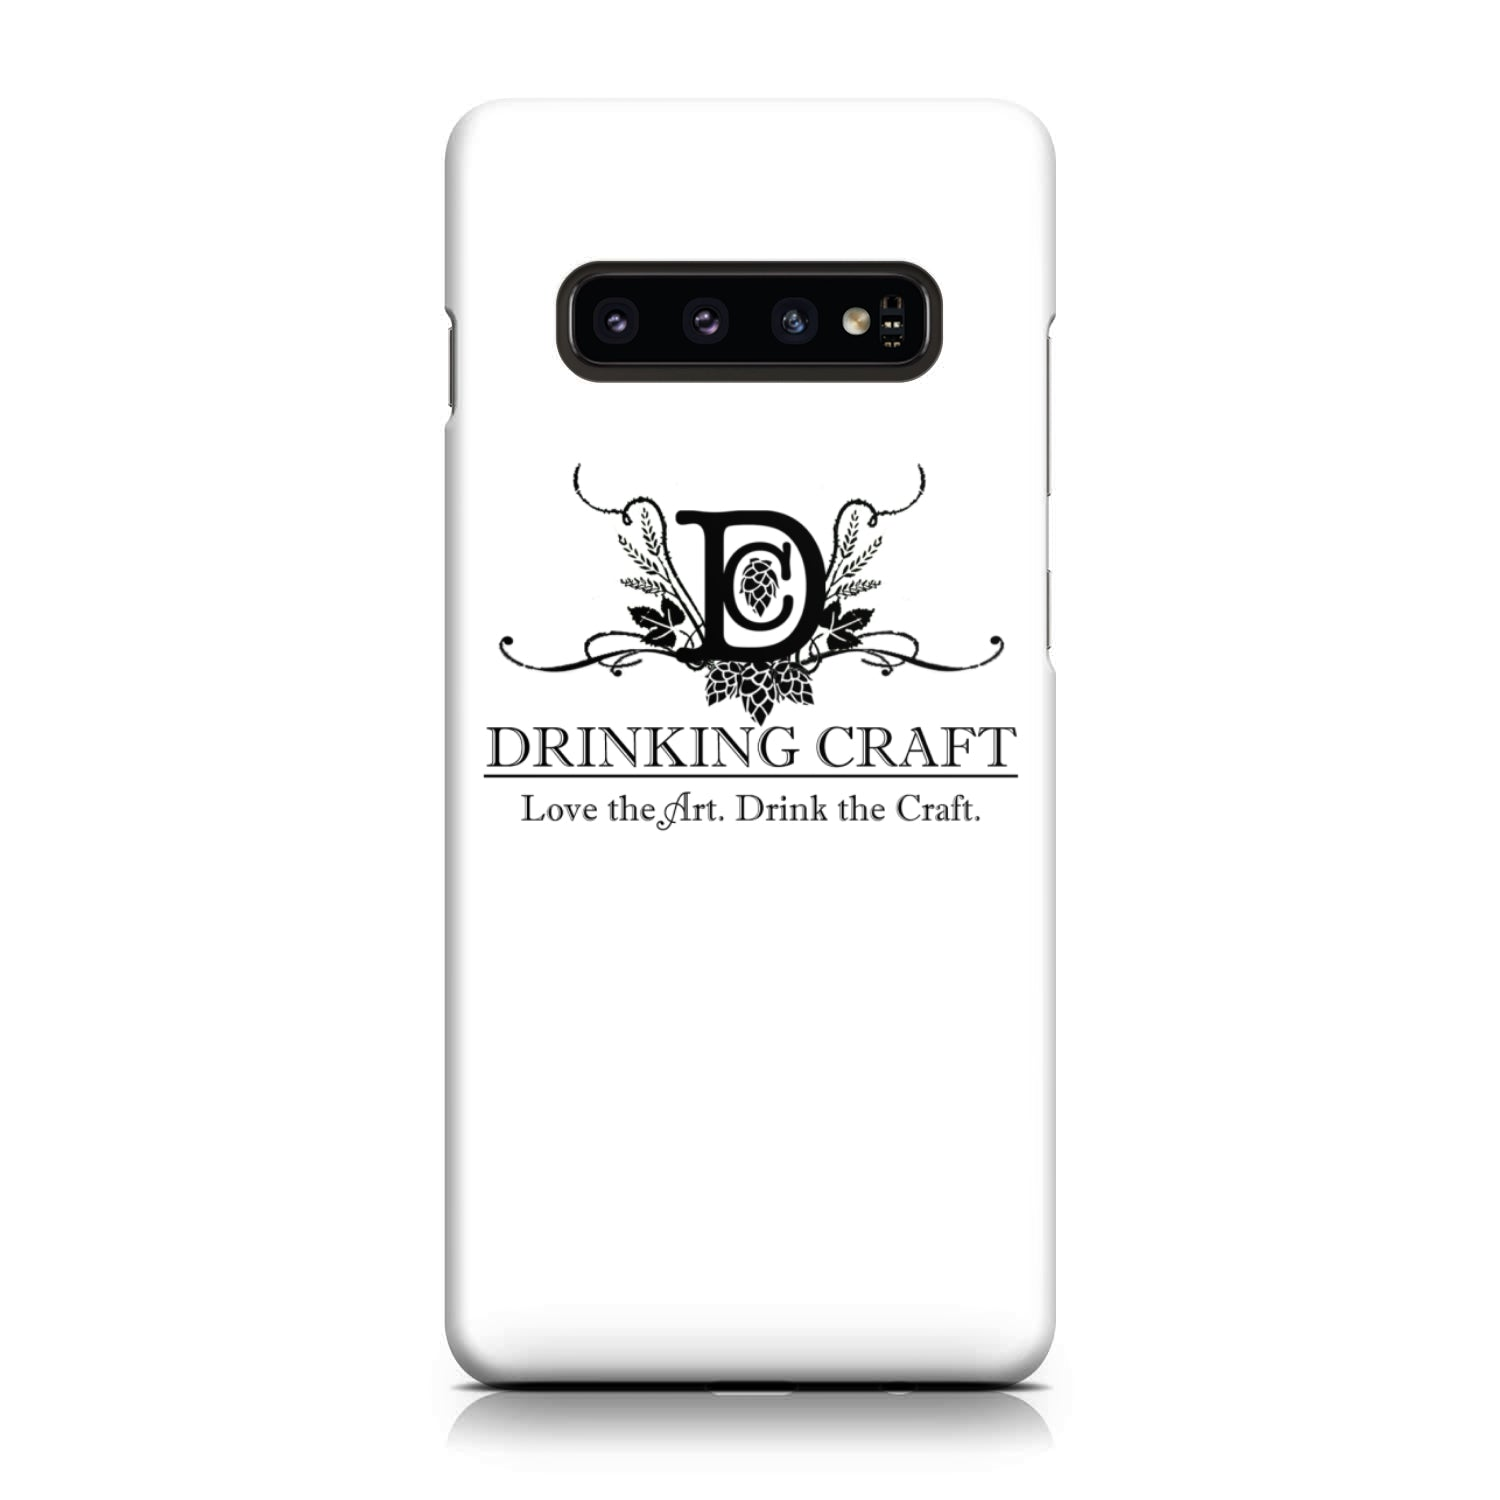 Drinking Craft Slim Phone Case